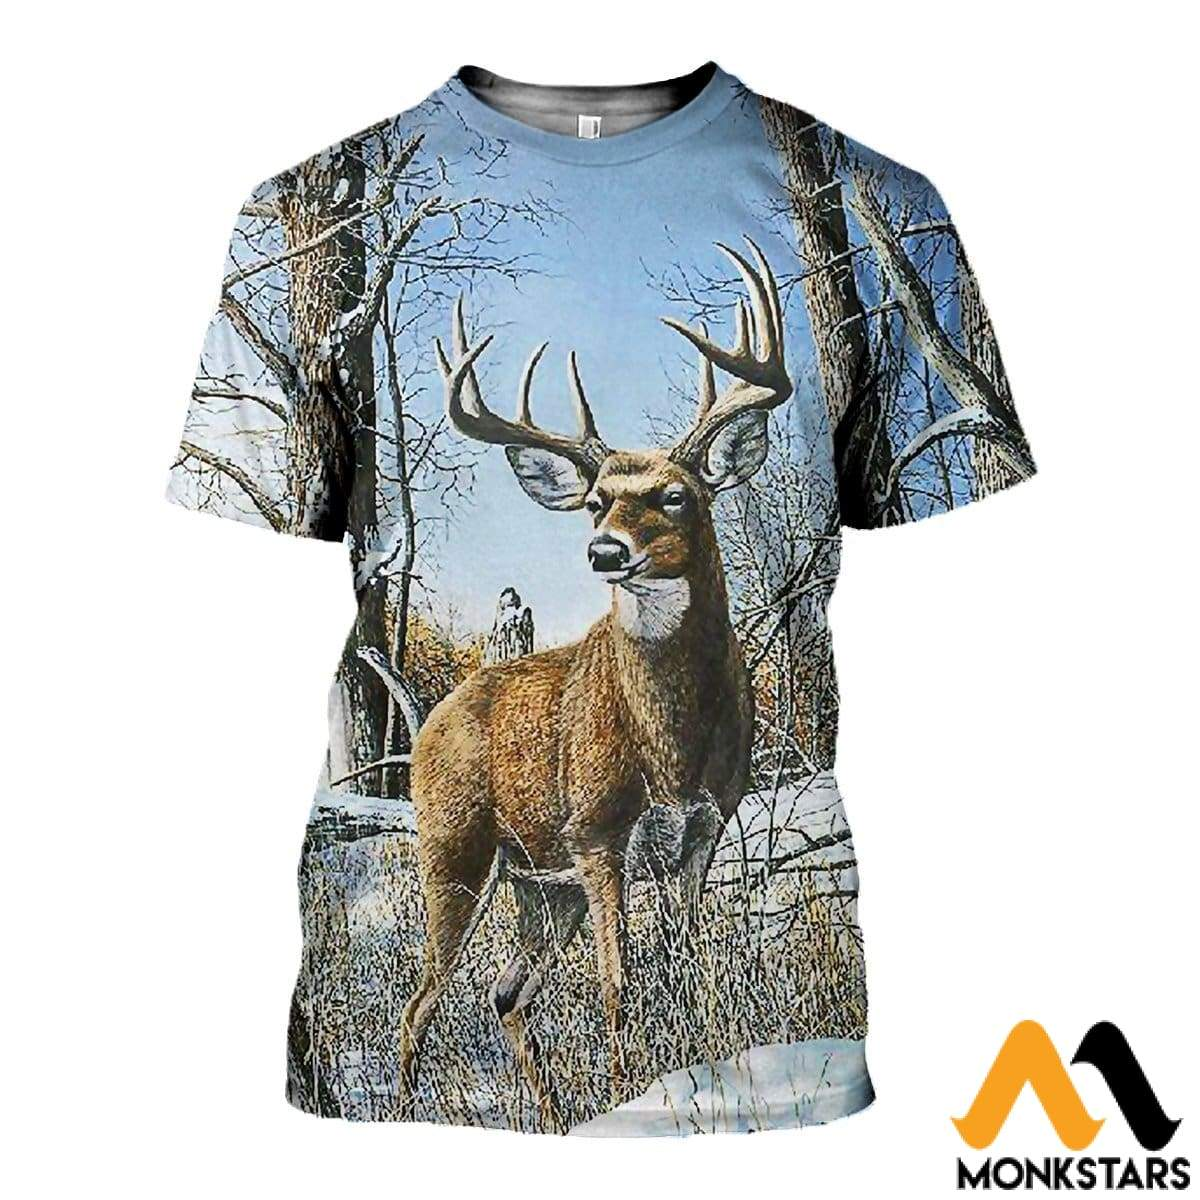 3D All Over Printed Deer And Snow Shirts Shorts T-Shirt / Xs Clothes